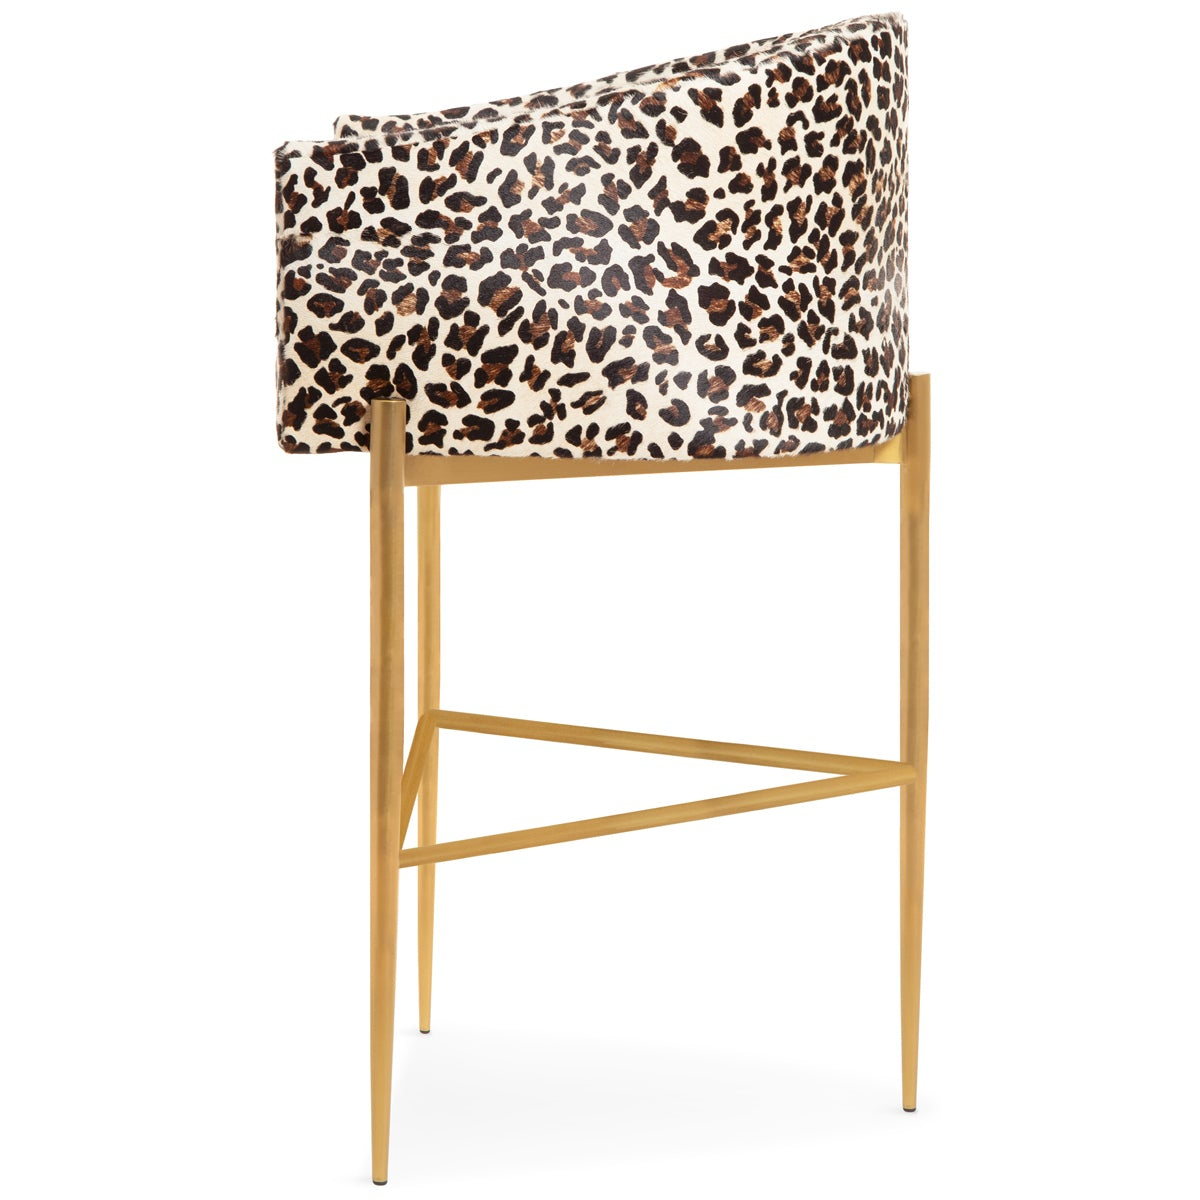 Art Deco Bar And Counter Stools With Leopard Print On